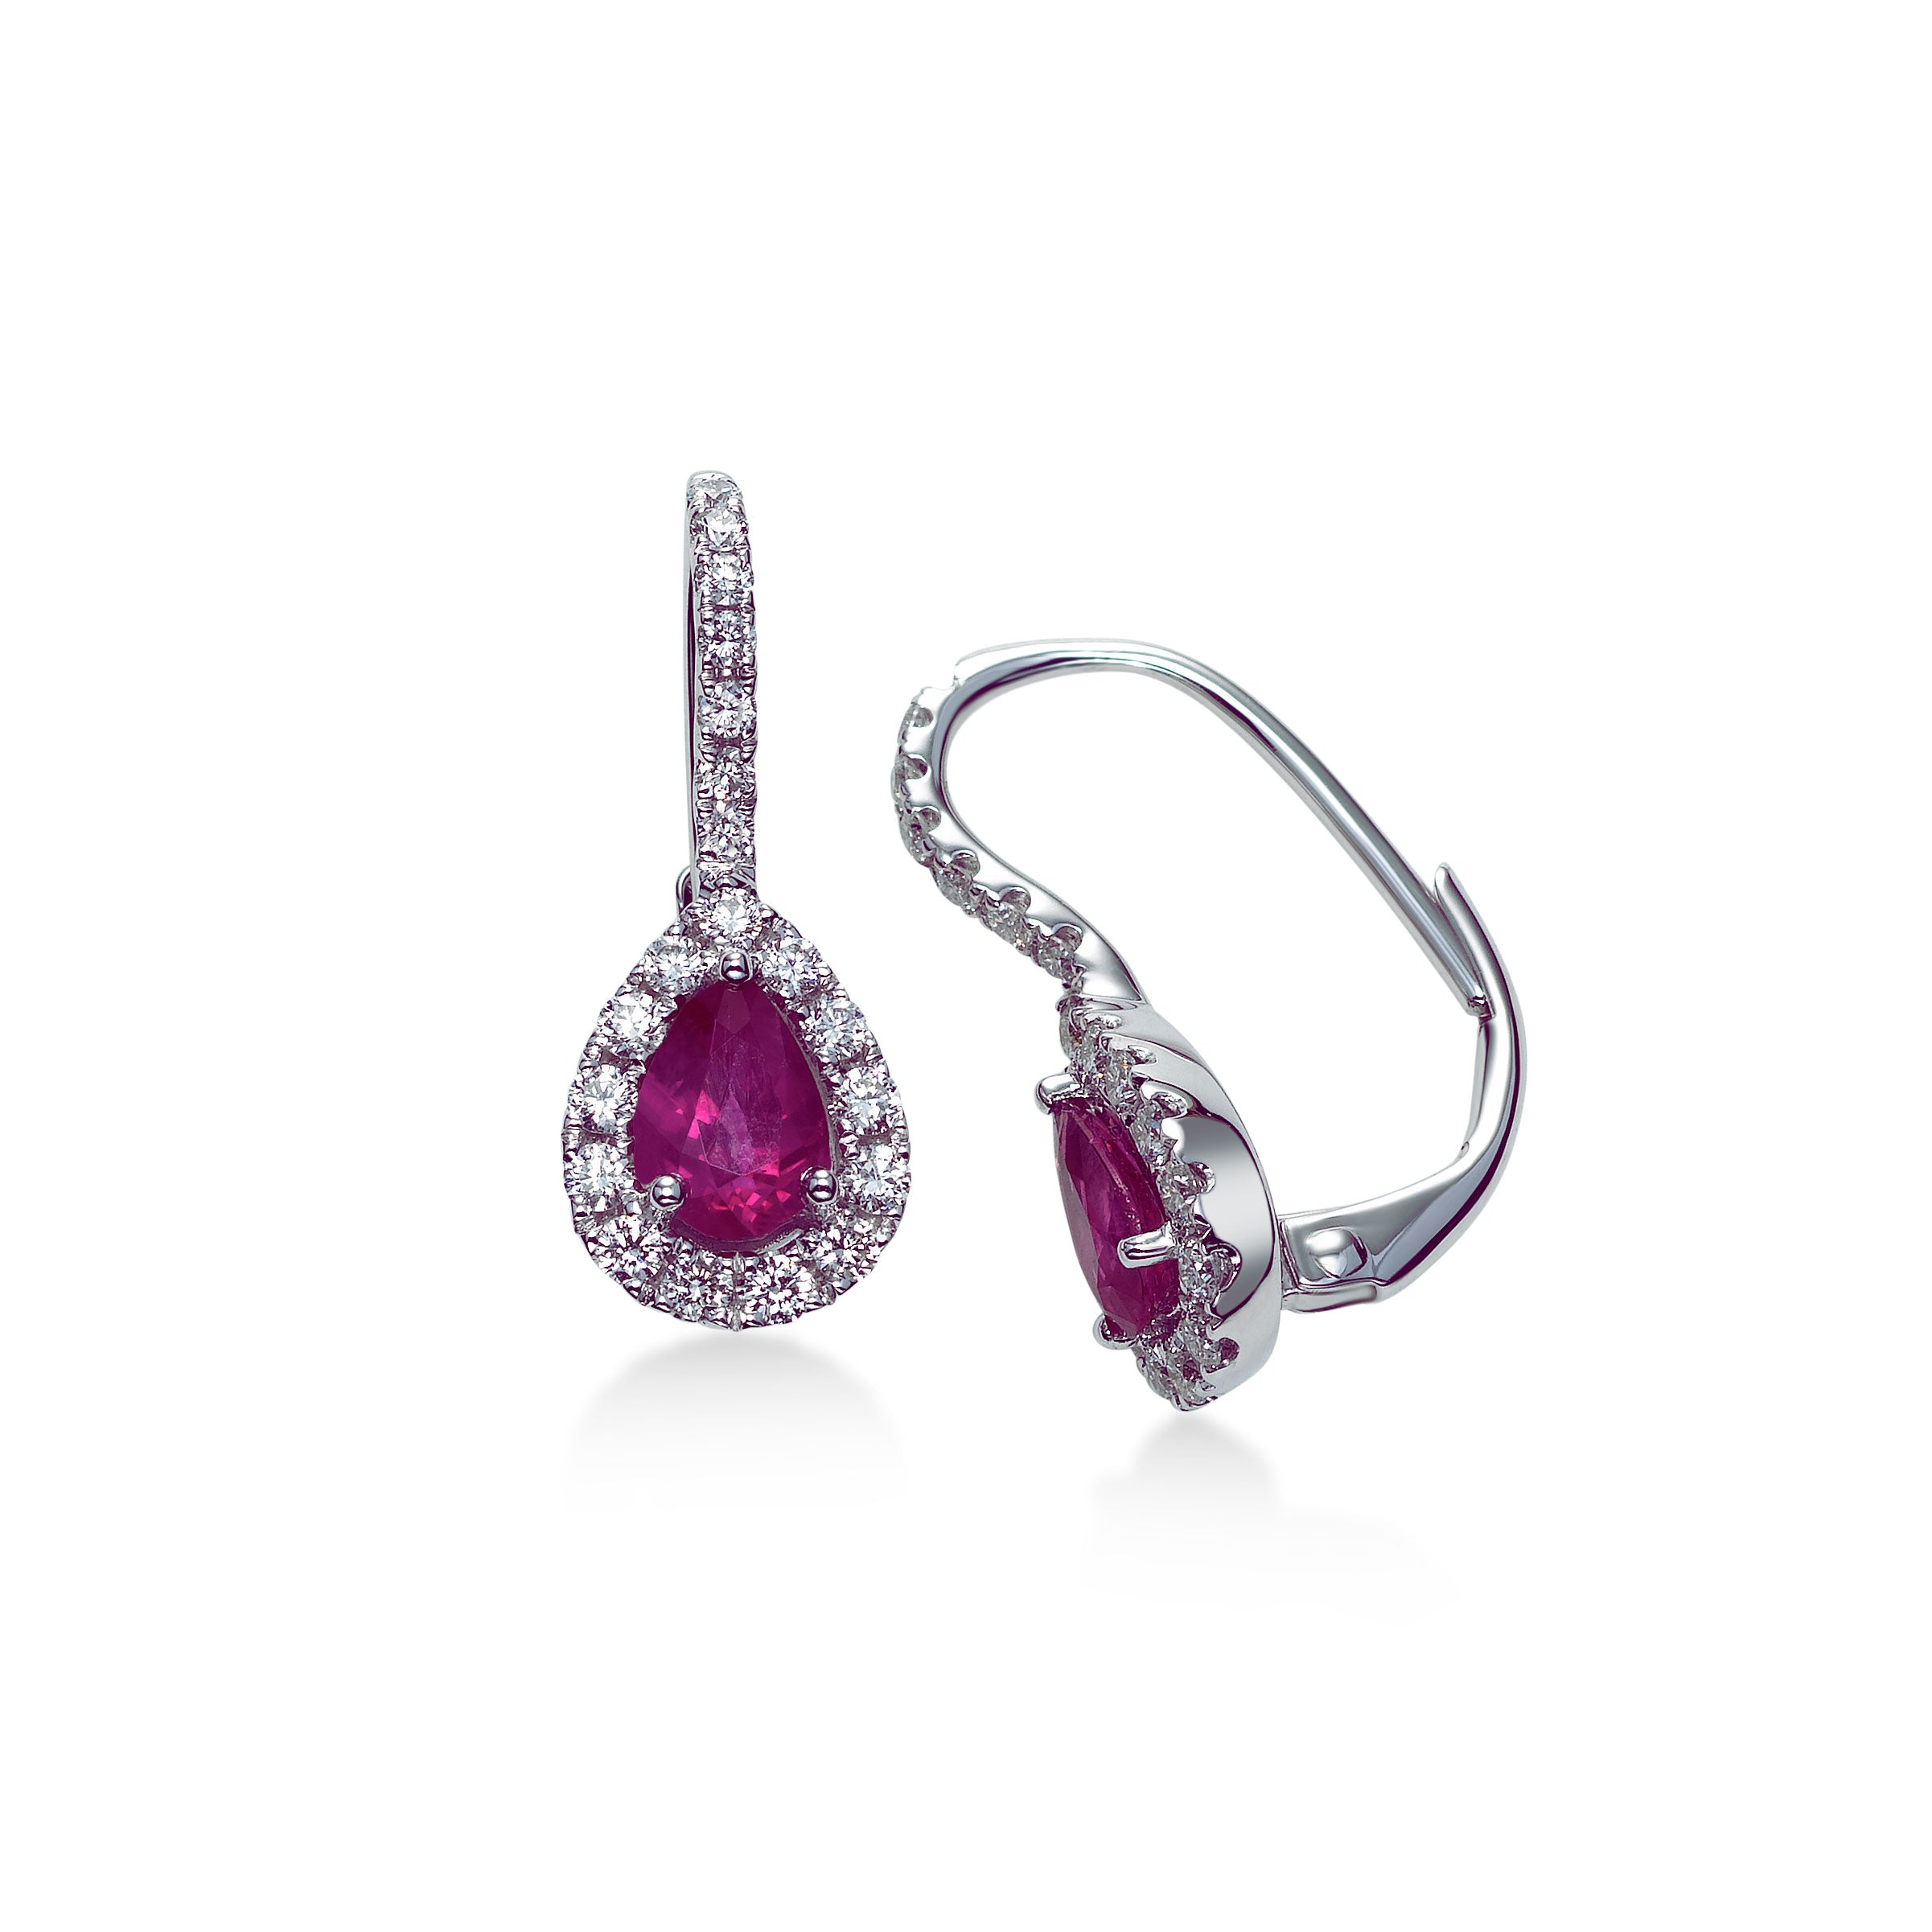 Pear Shaped Ruby and Diamond Halo Earrings, 18K White Gold